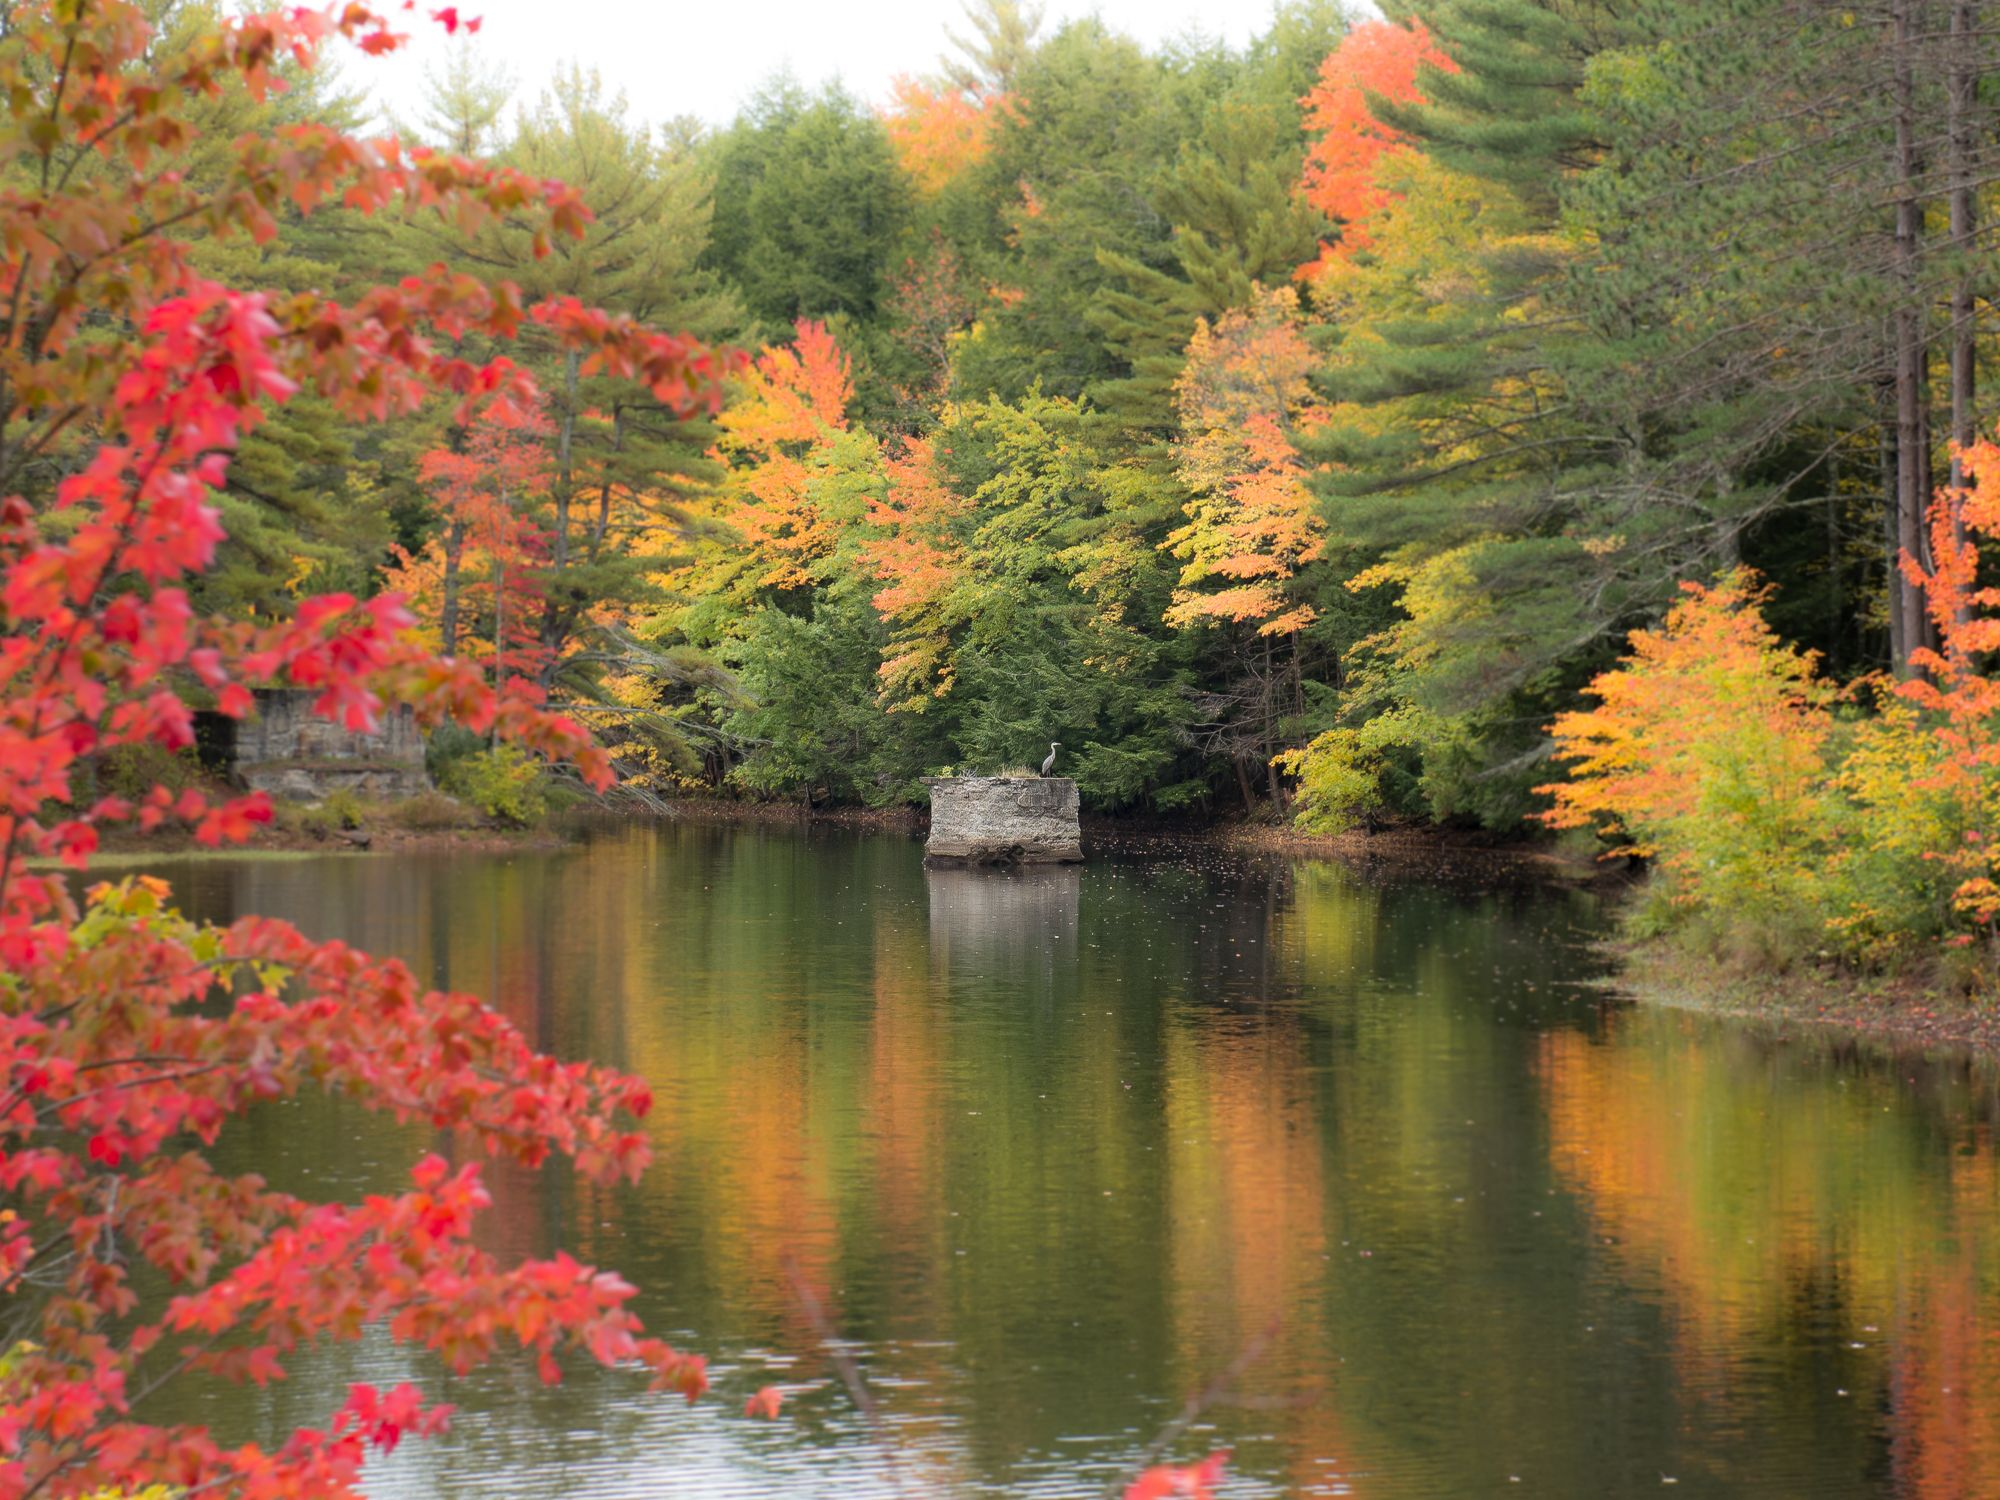 This Just Might be The Perfect Place to Relax and Unwind in #CentralMA 's Natural Beauty.